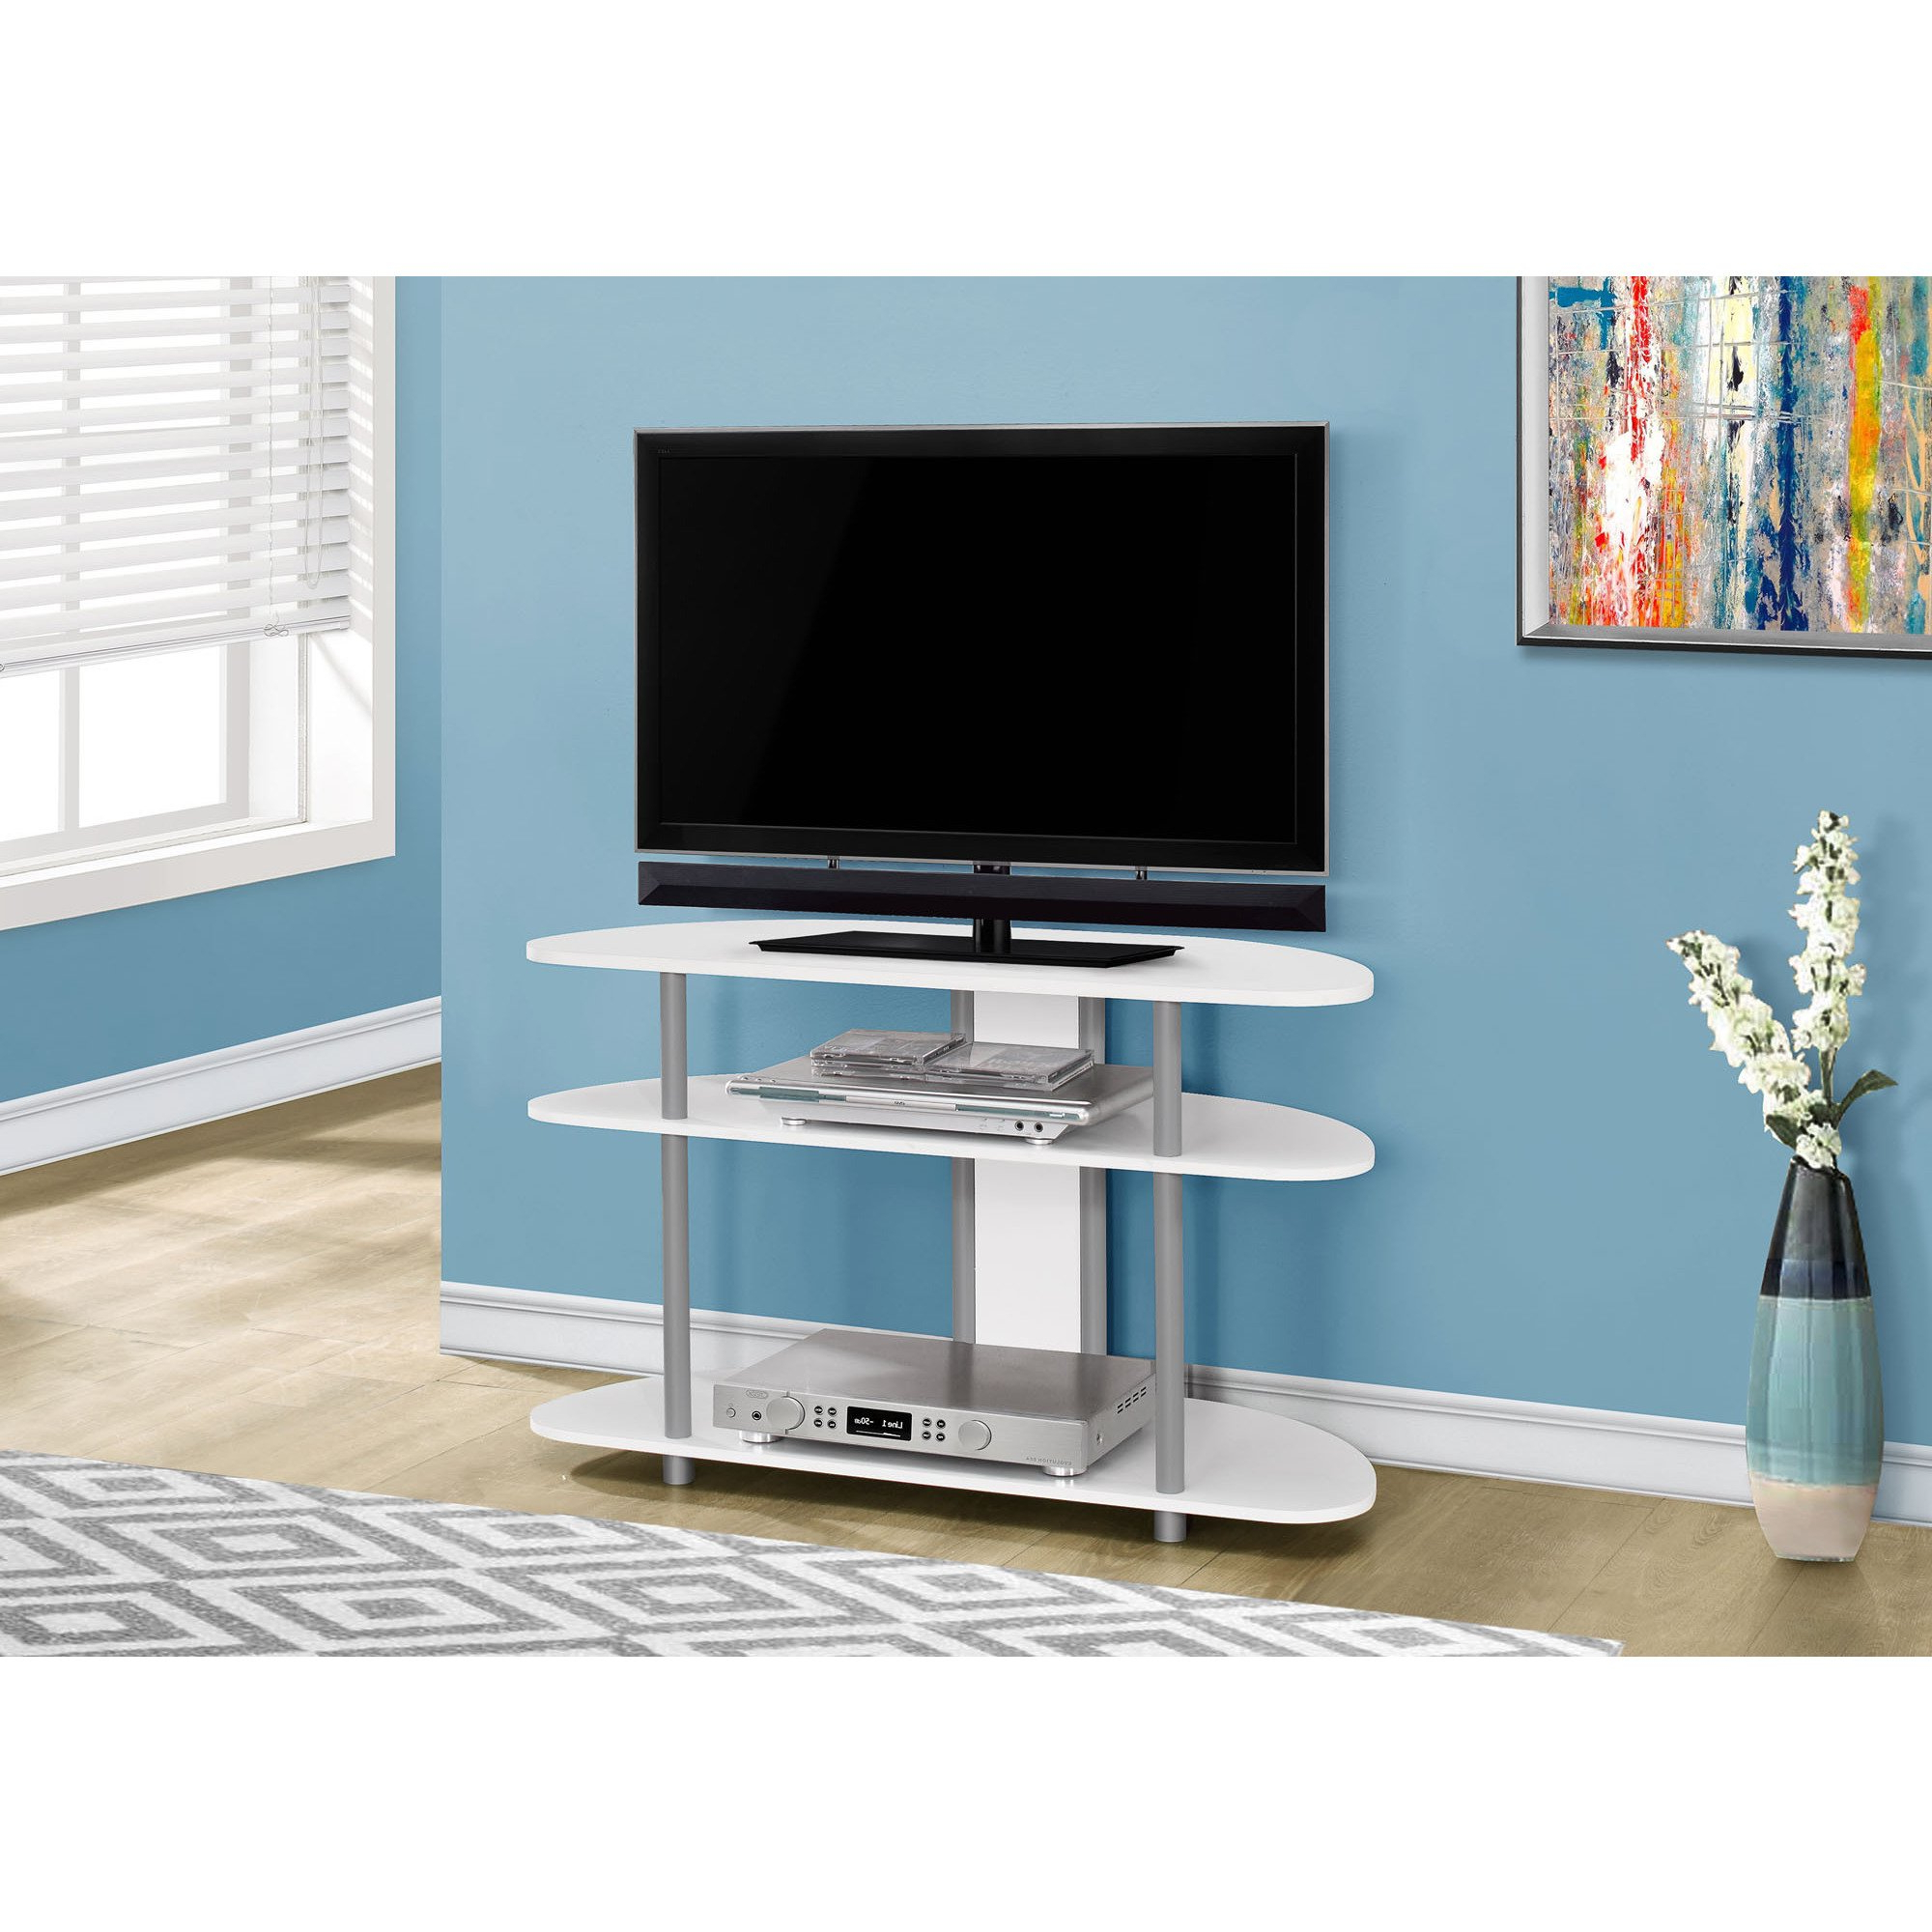 """Tv Stands 38 Inches Wide Within 2017 Shop Tv Stand 38""""l/white With Silver Accent – Free Shipping Today (View 20 of 20)"""